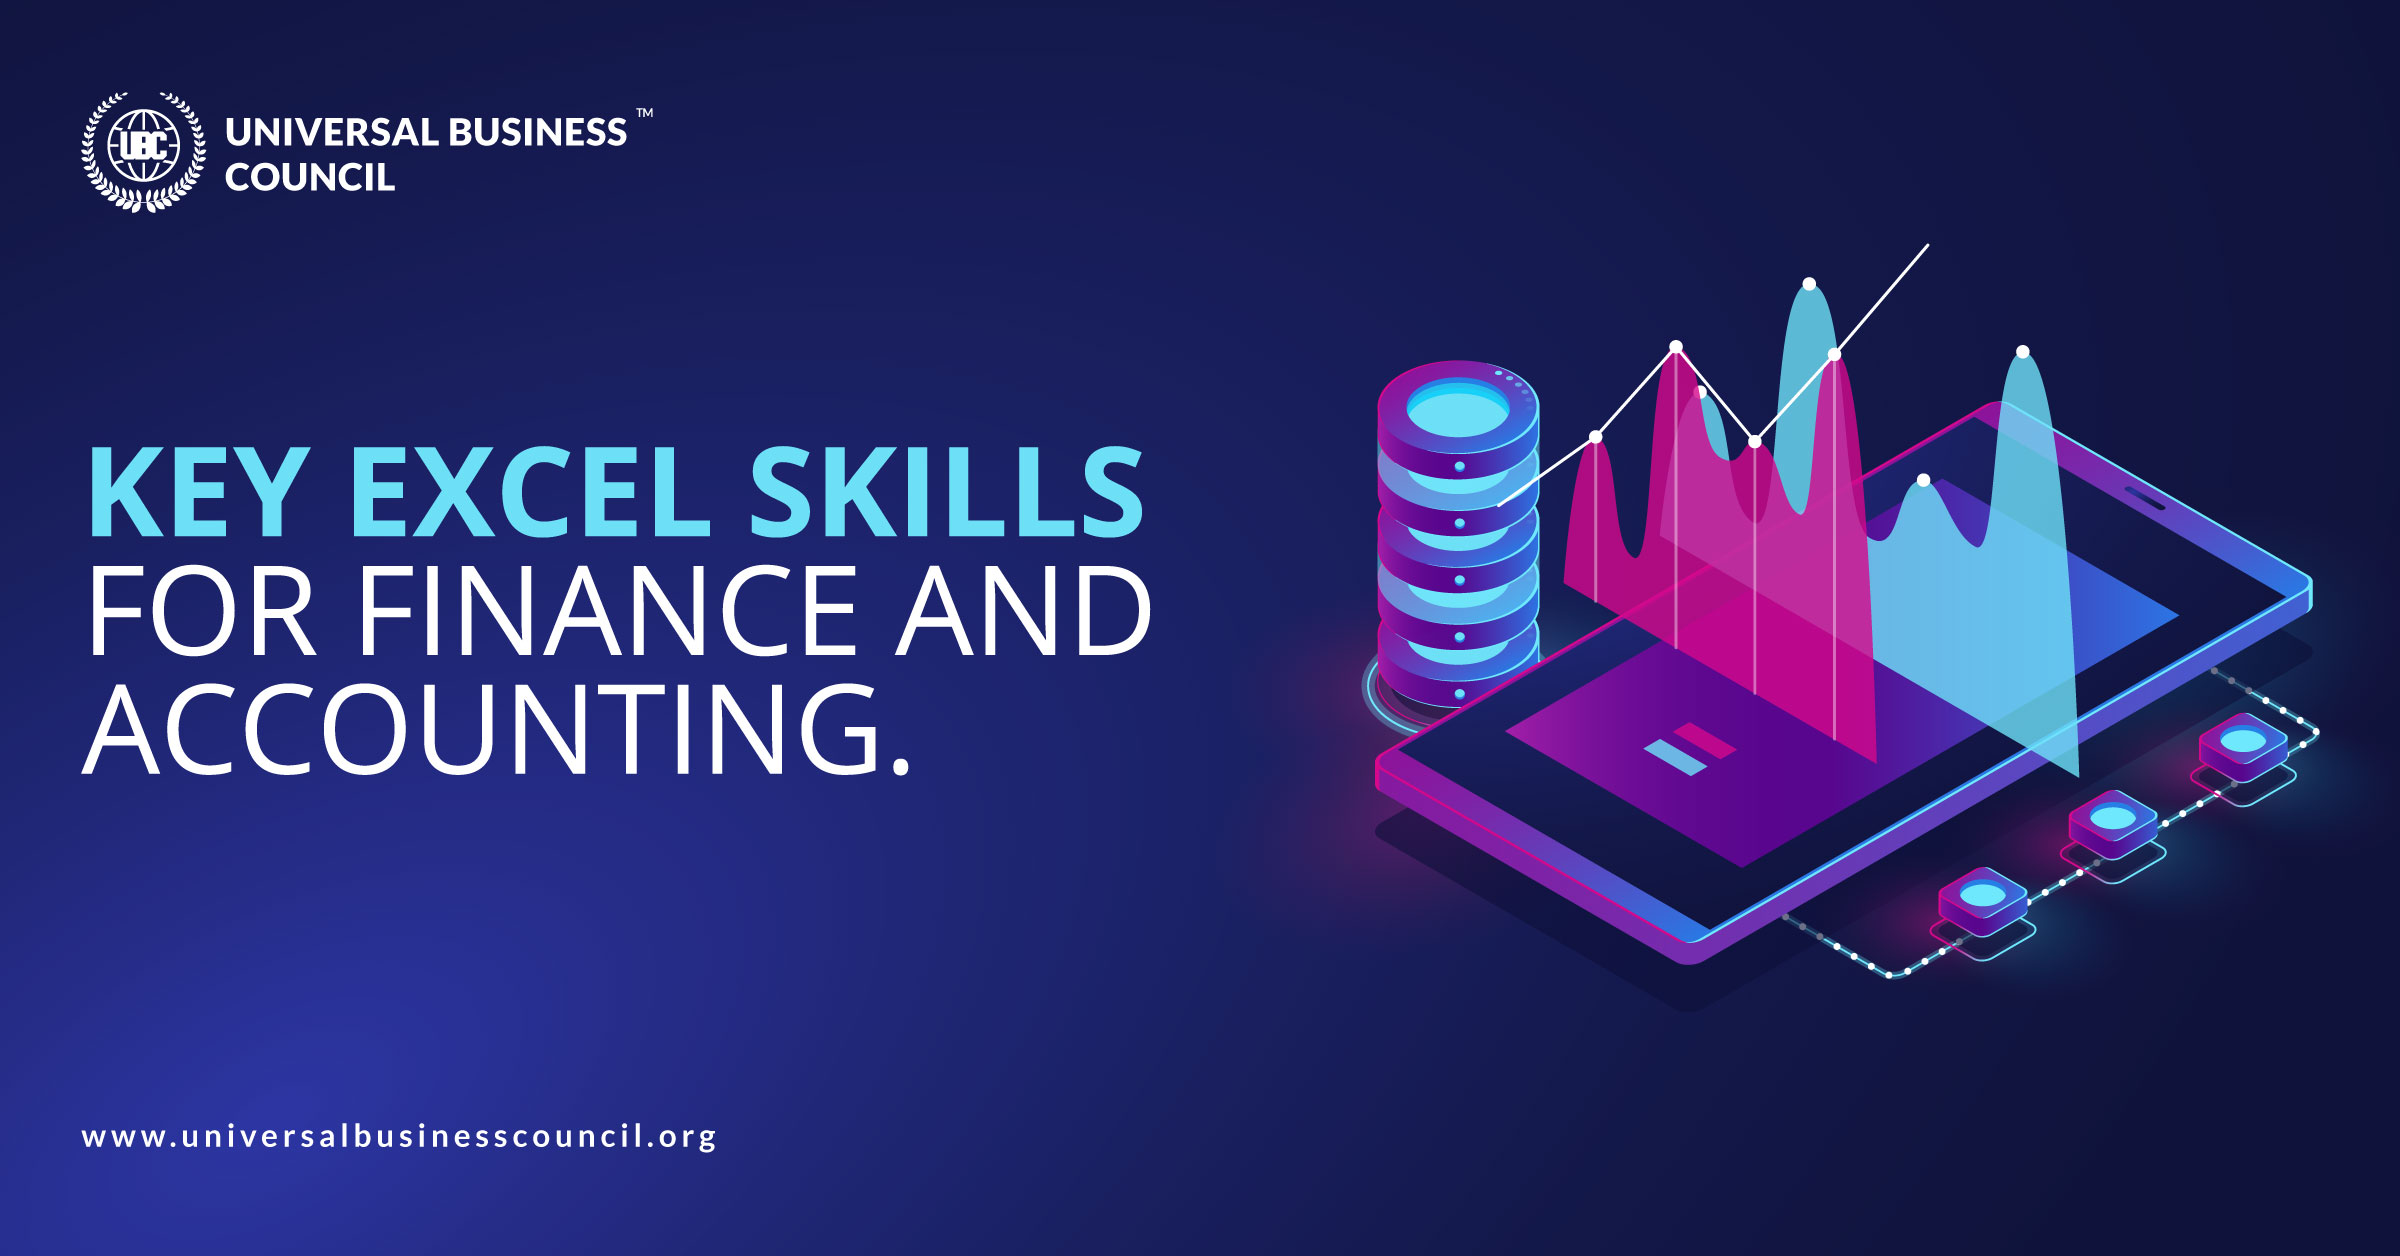 Key-excel-skills-for-finance-and-accounting